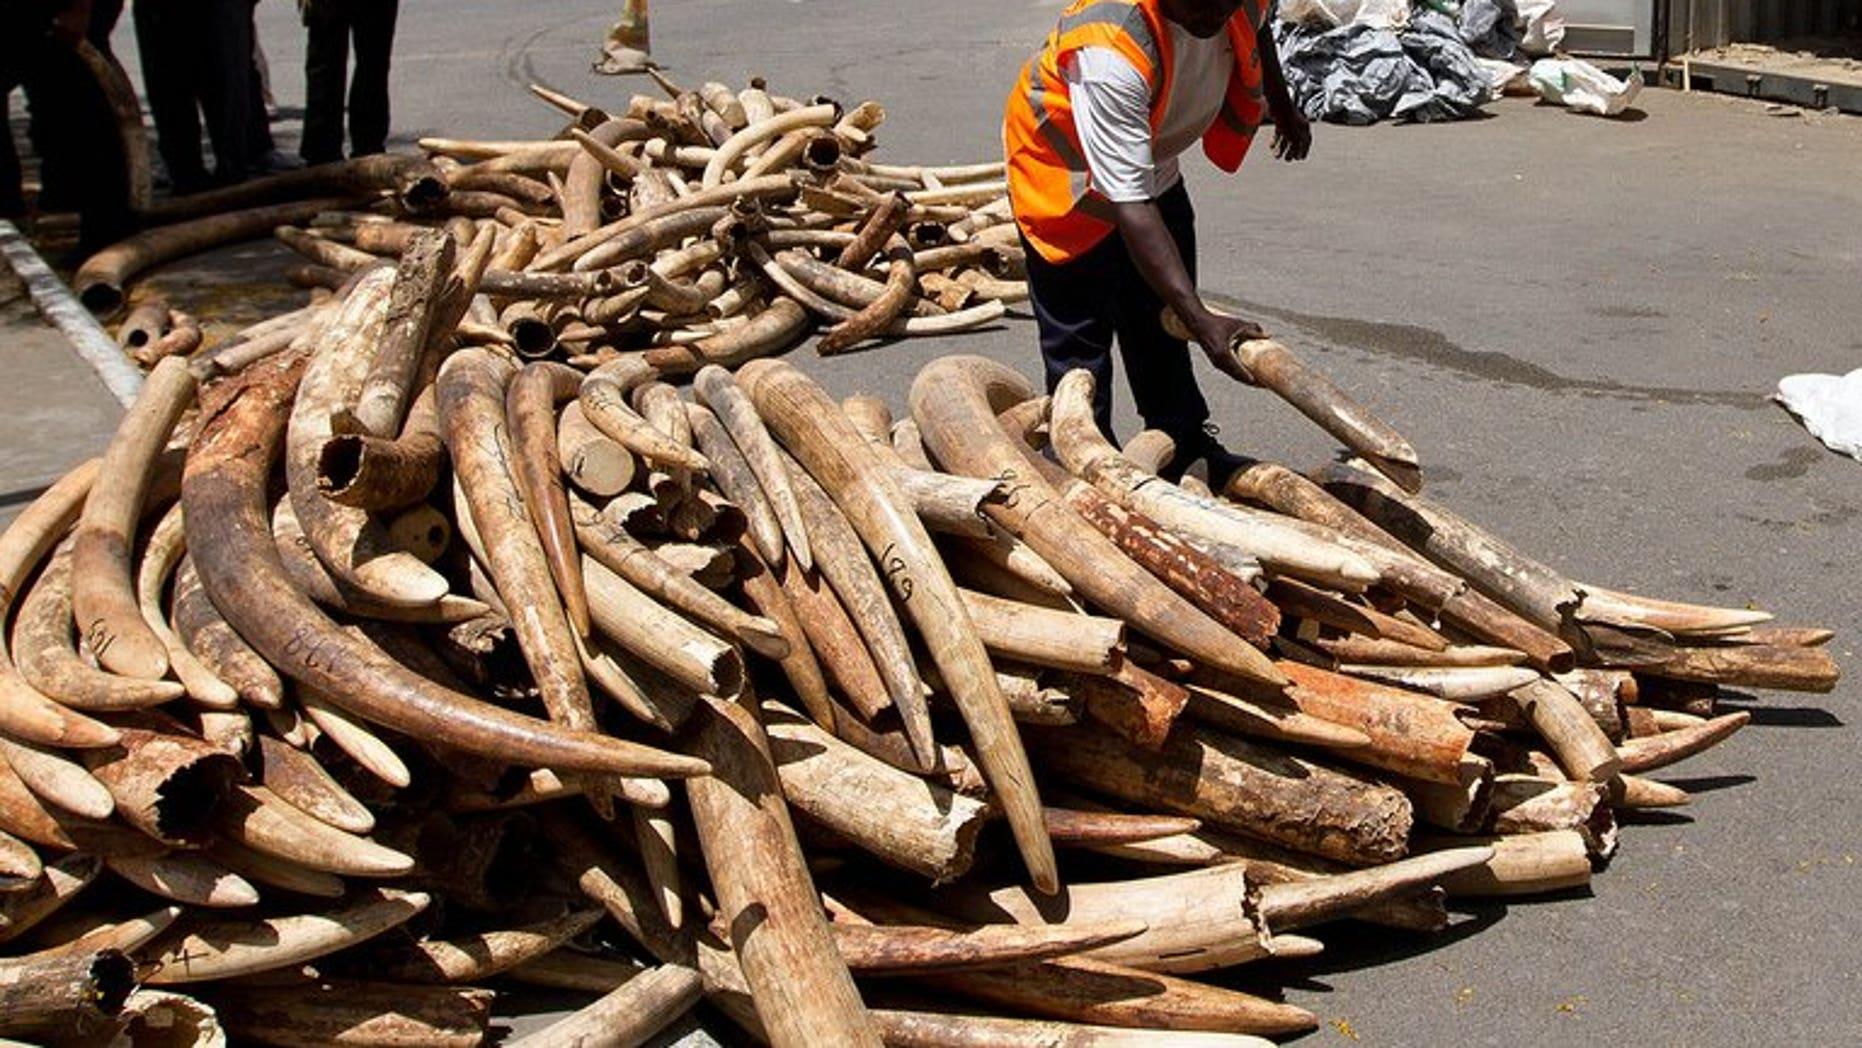 A Kenya Ports Authority (KPA) employee inspects confiscated ivory tusks in Mombasa, on January 21, 2013. Kenyan customs officers have confiscated more than three tonnes of elephant ivory destined for Malaysia -- one of the largest in a series of such seizures.